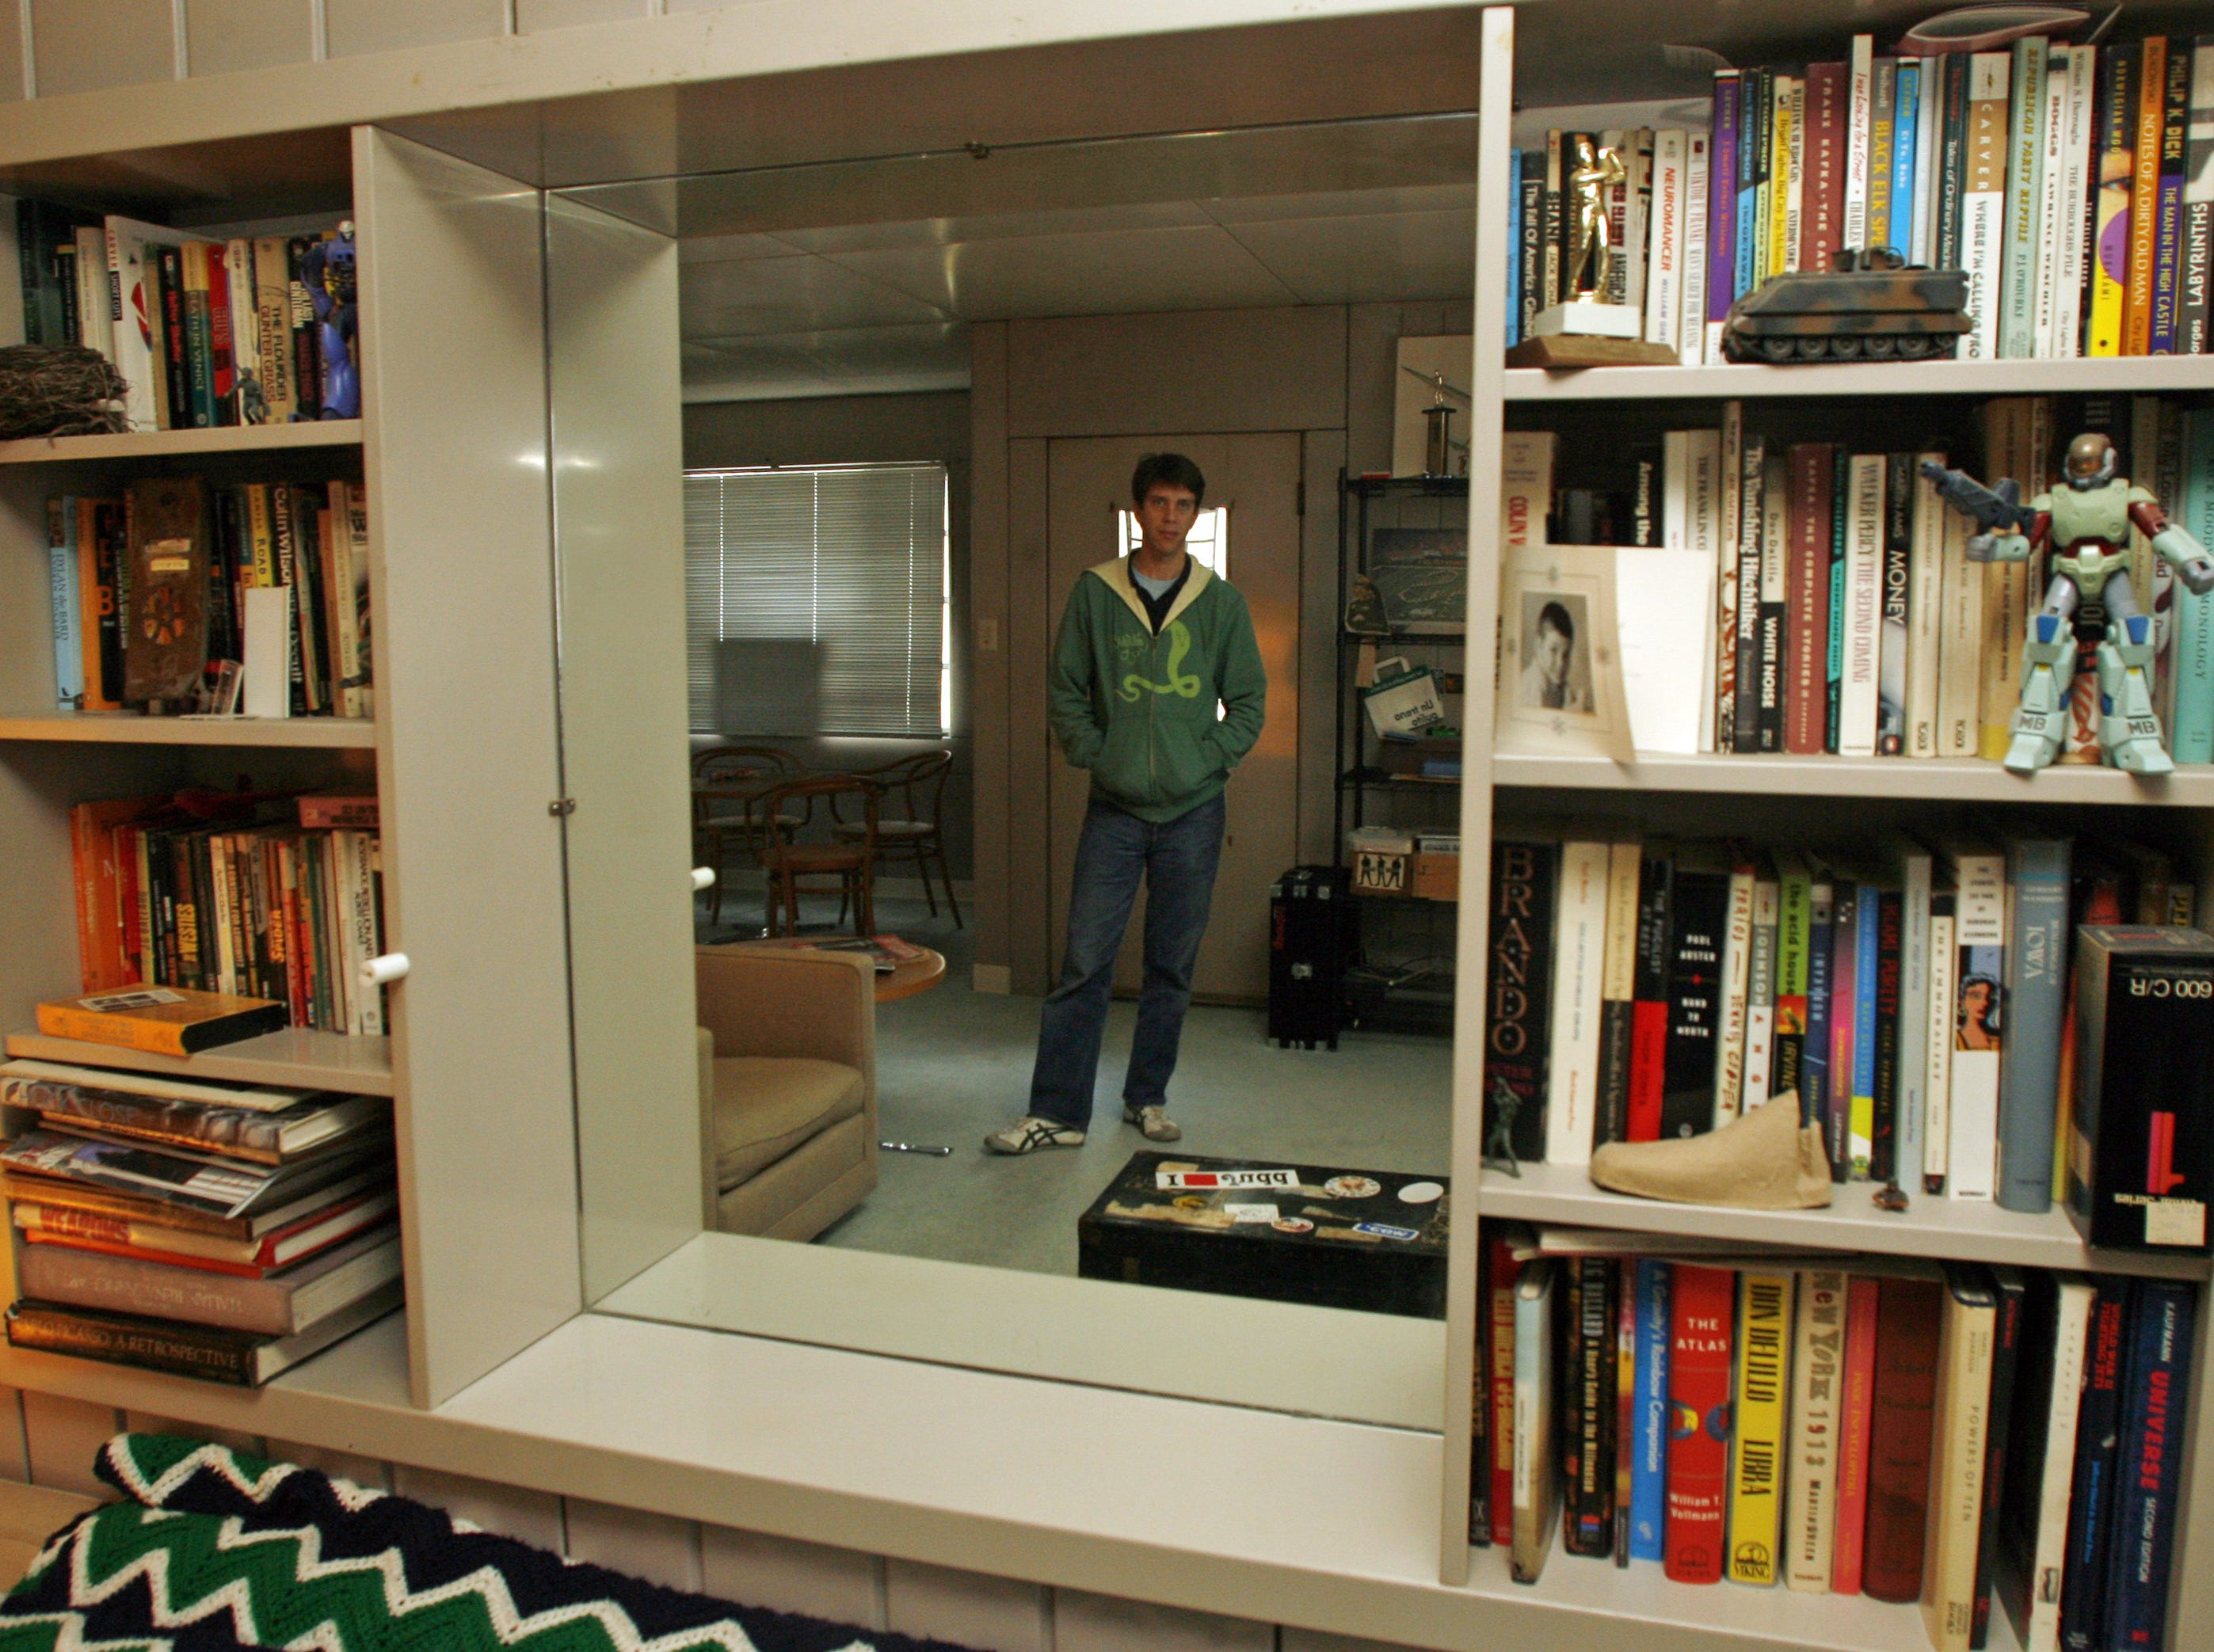 Alex Brown is reflected in the mirror between built-in bookshelves that are original to his Lustron home in this 2006 file photo.